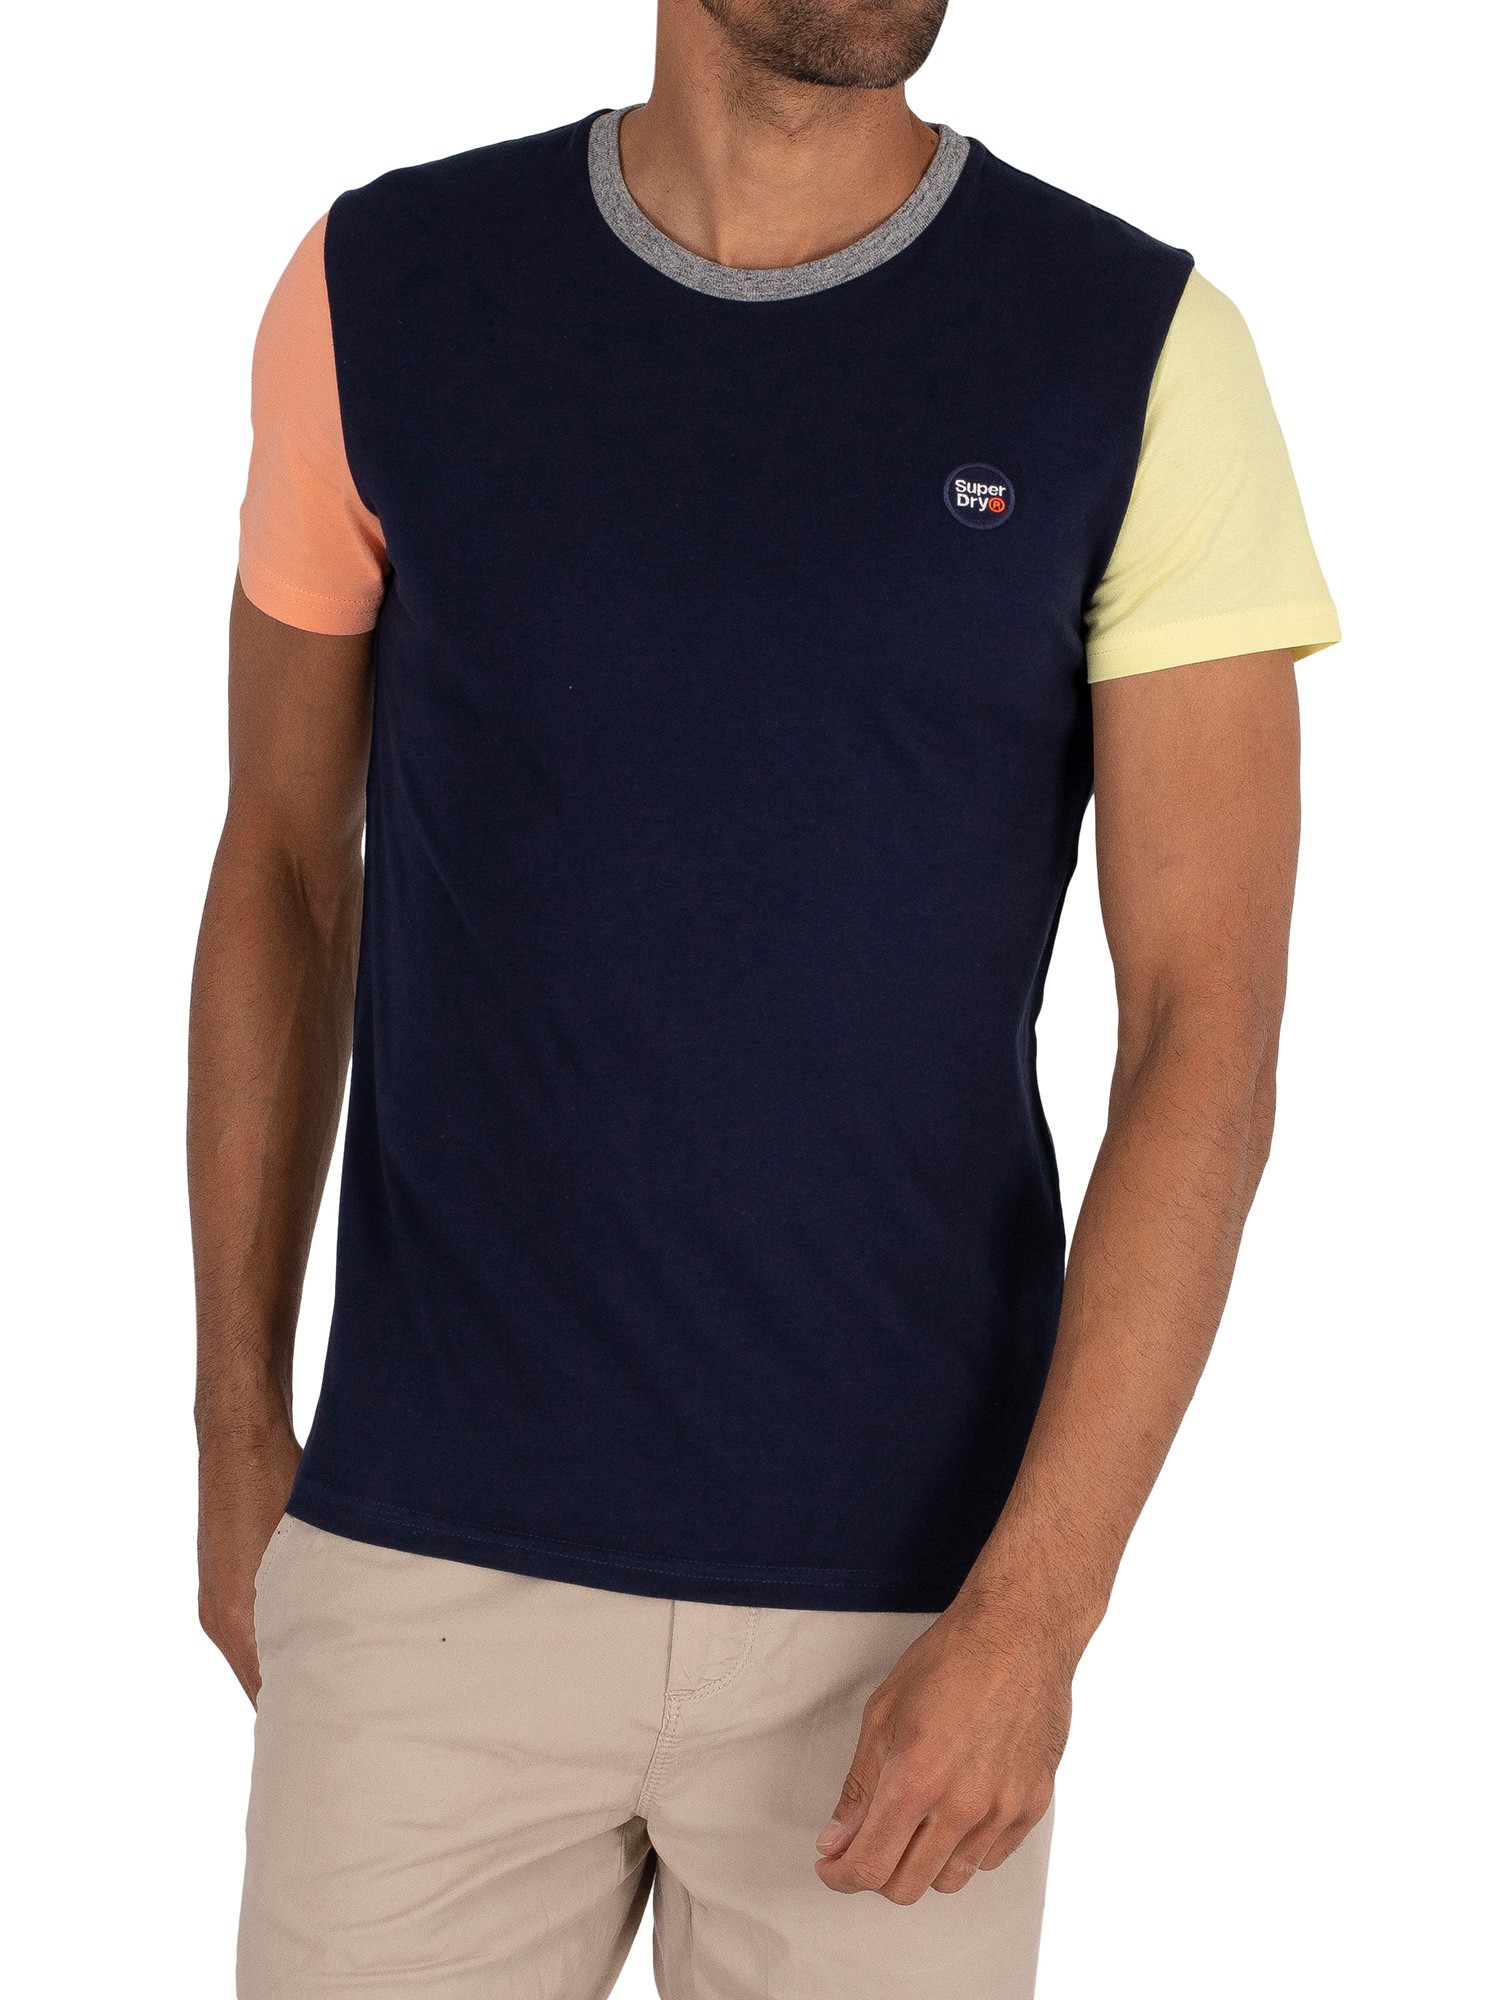 Superdry Collective Baseball T-Shirt - Rich Navy